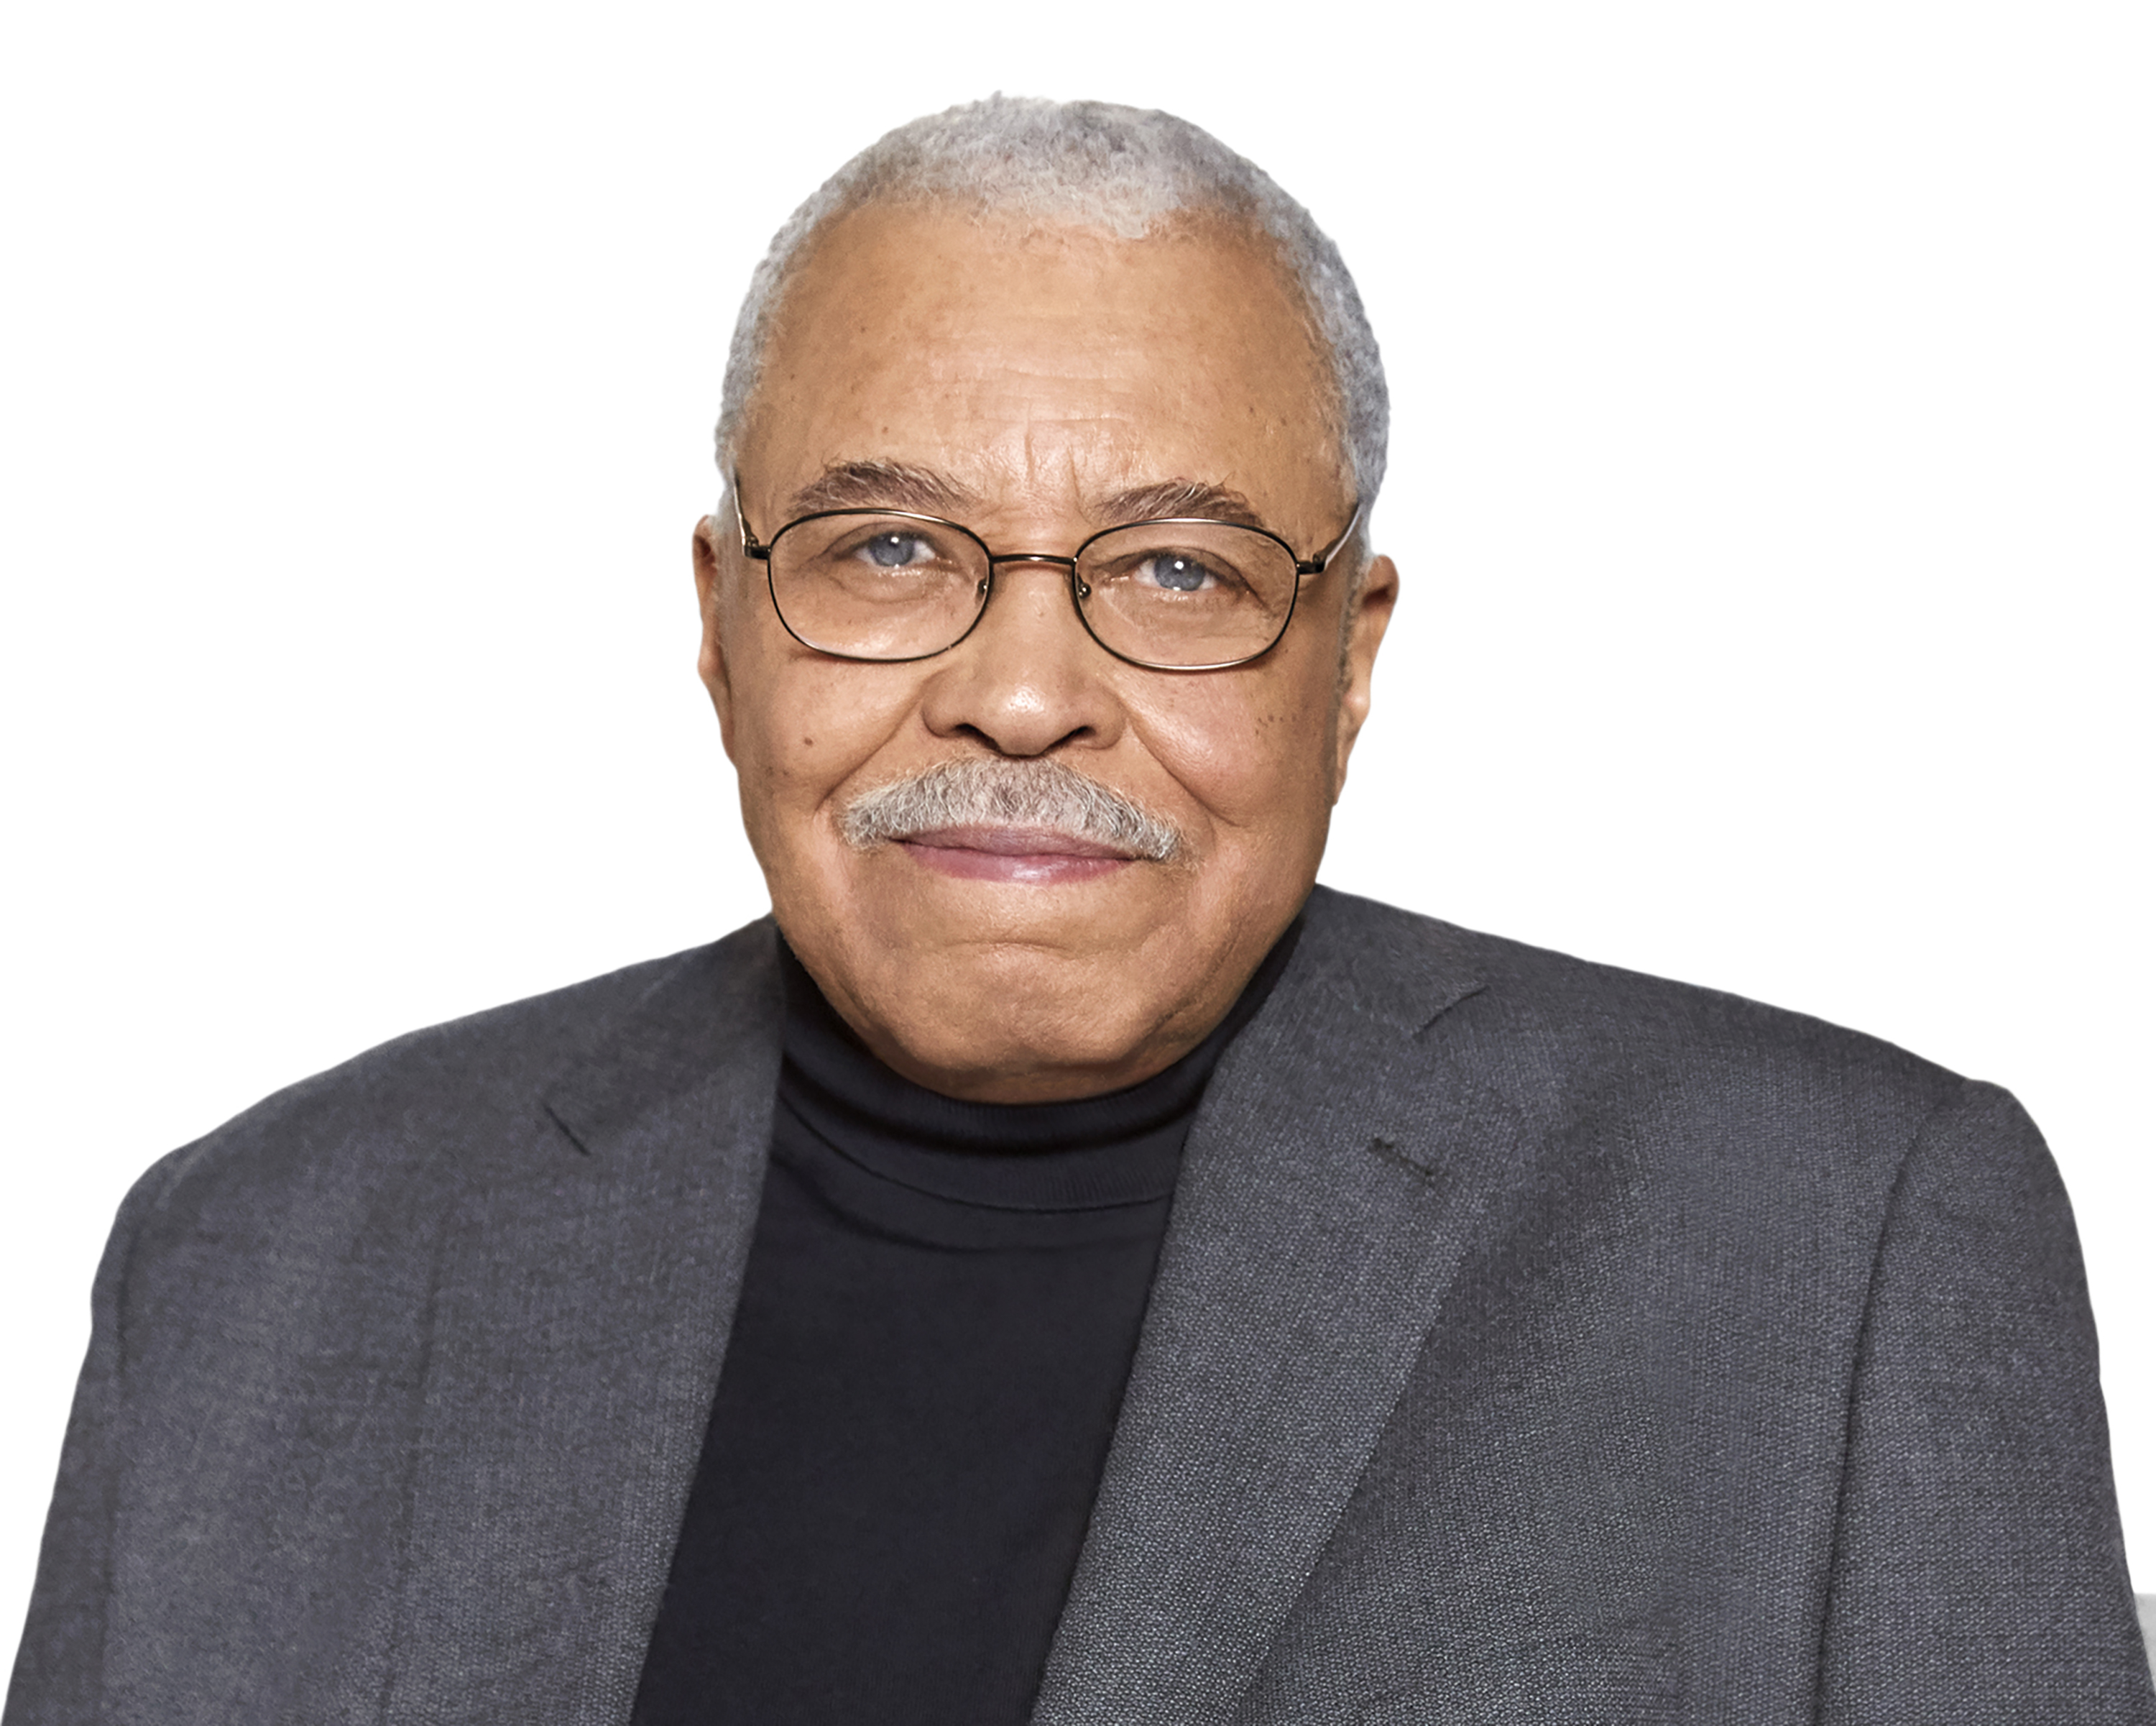 Image result for james earl jones reading casey at the bat